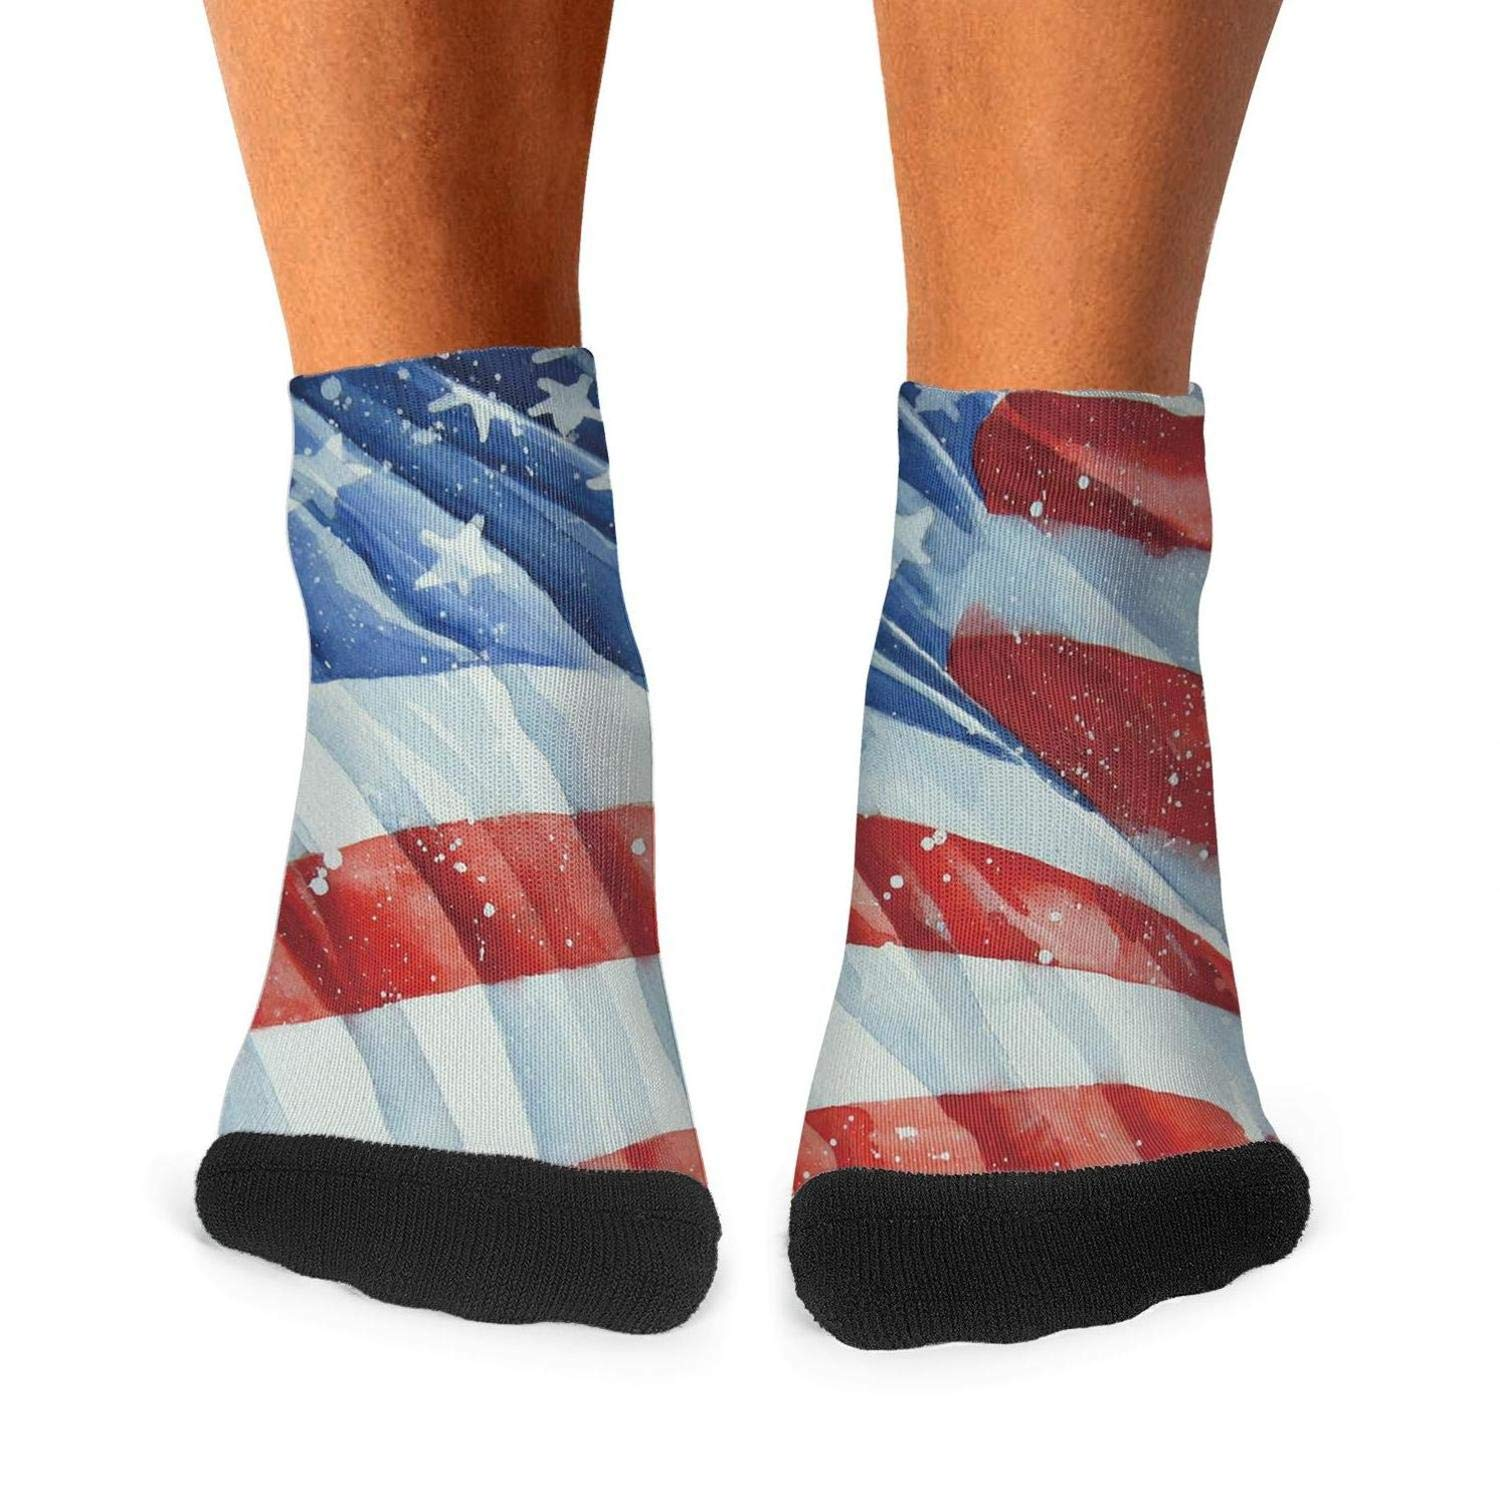 Tasbon Mens Athletic Socks Happy 4th of July American flag patriotic10 Classic Breathable Comfort Crew Socks